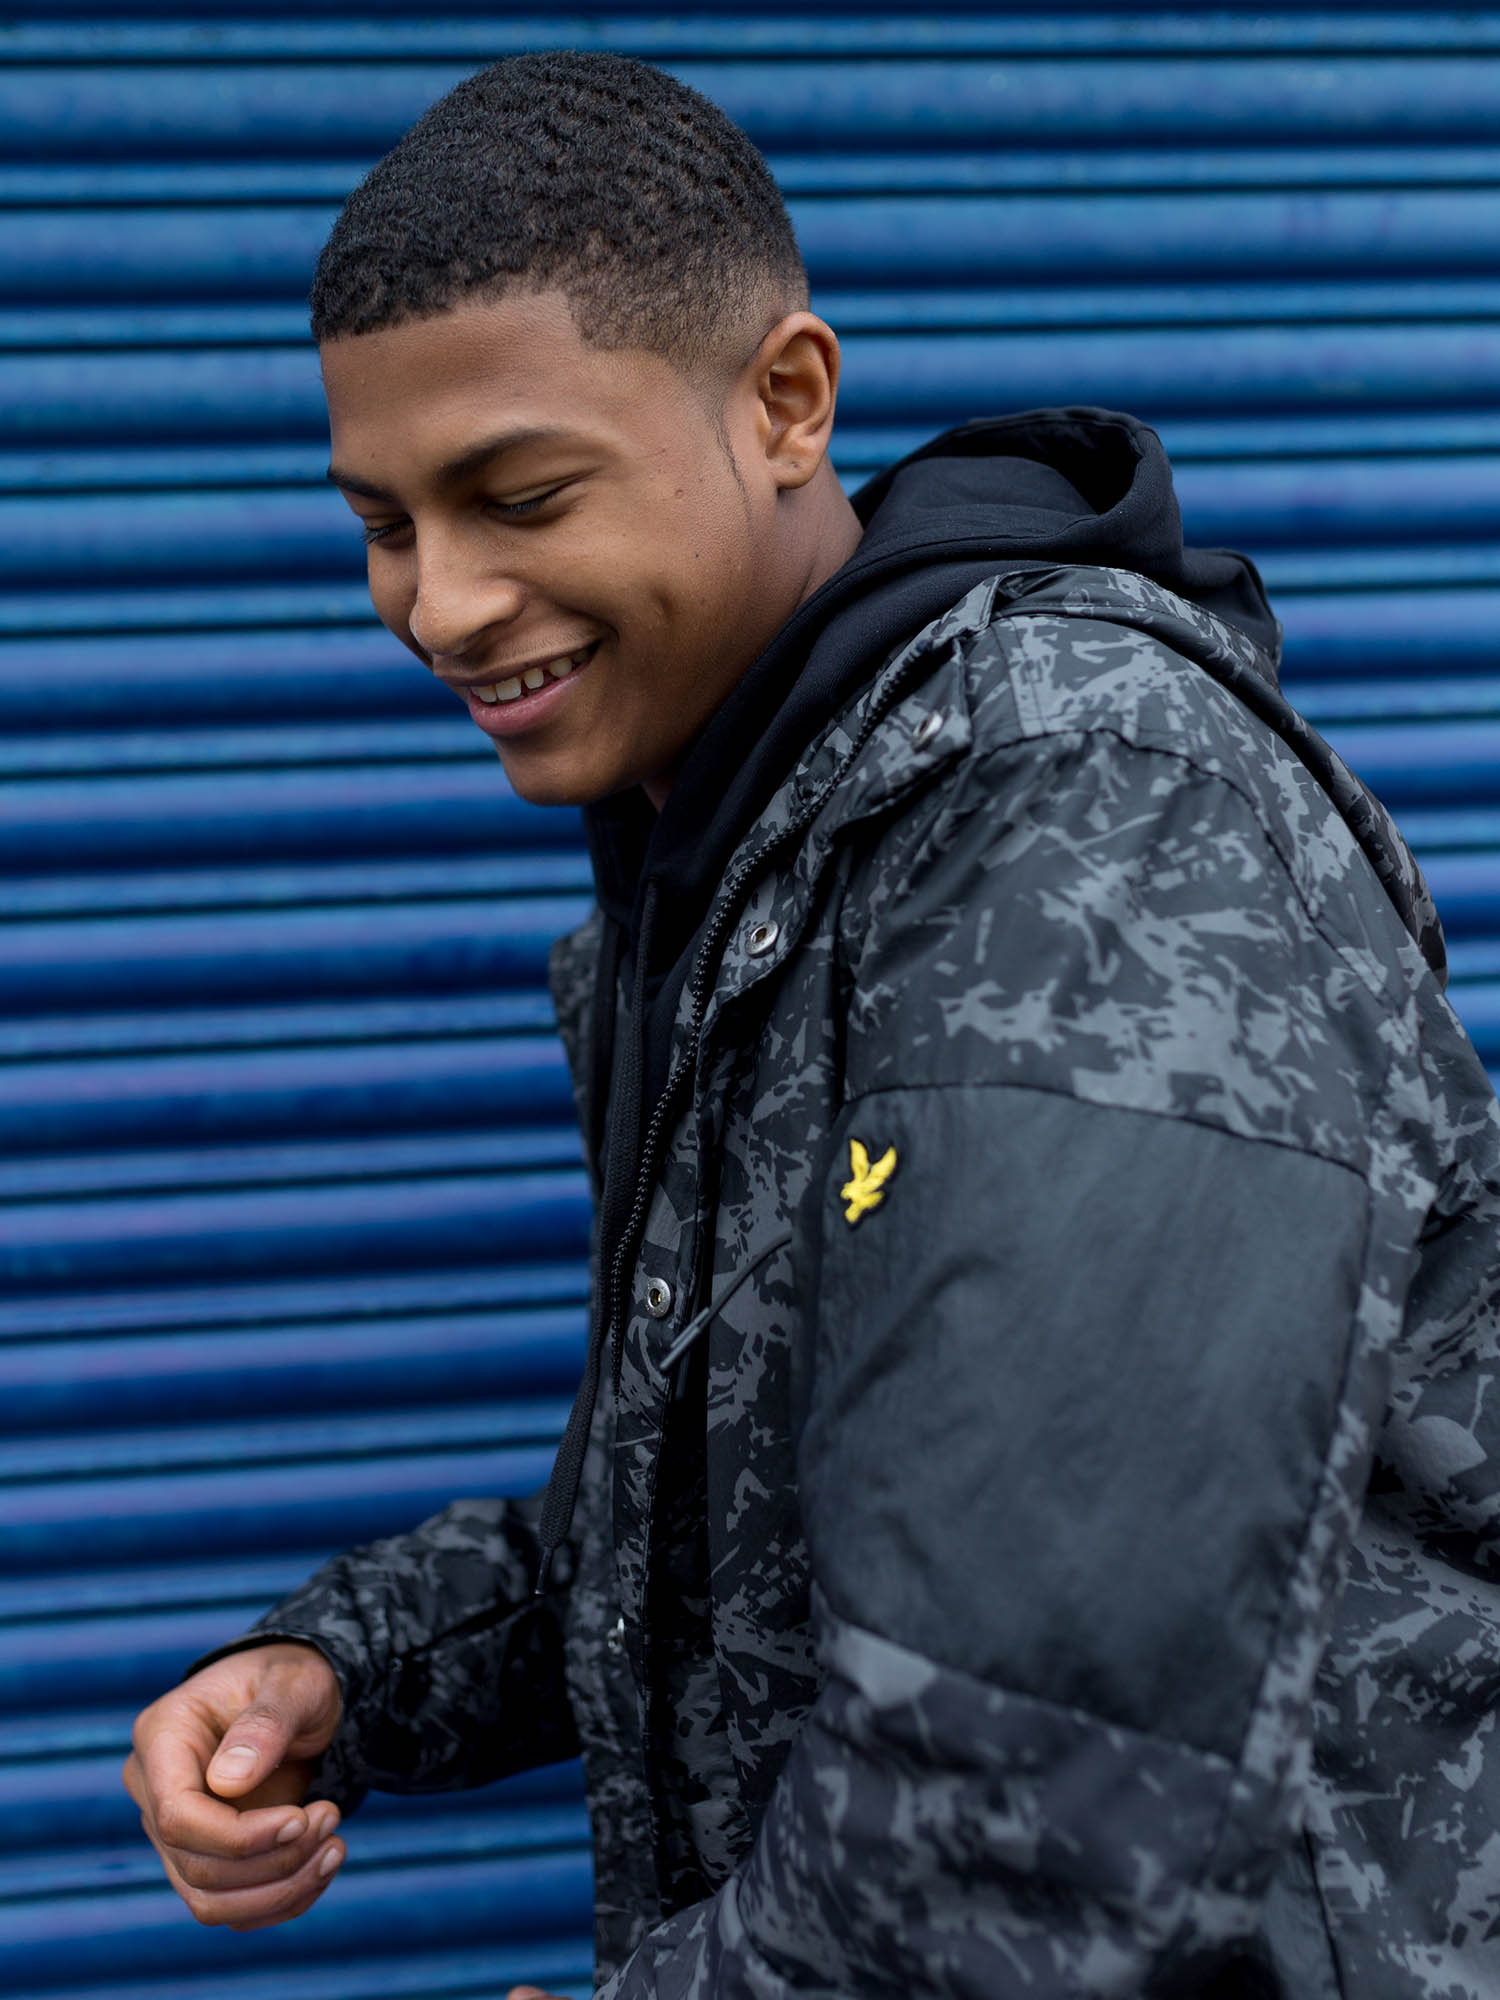 Rhian Bewster lyle and scott soccerbible_0026_Lyle & Scott x Rhian Brewster61.jpg